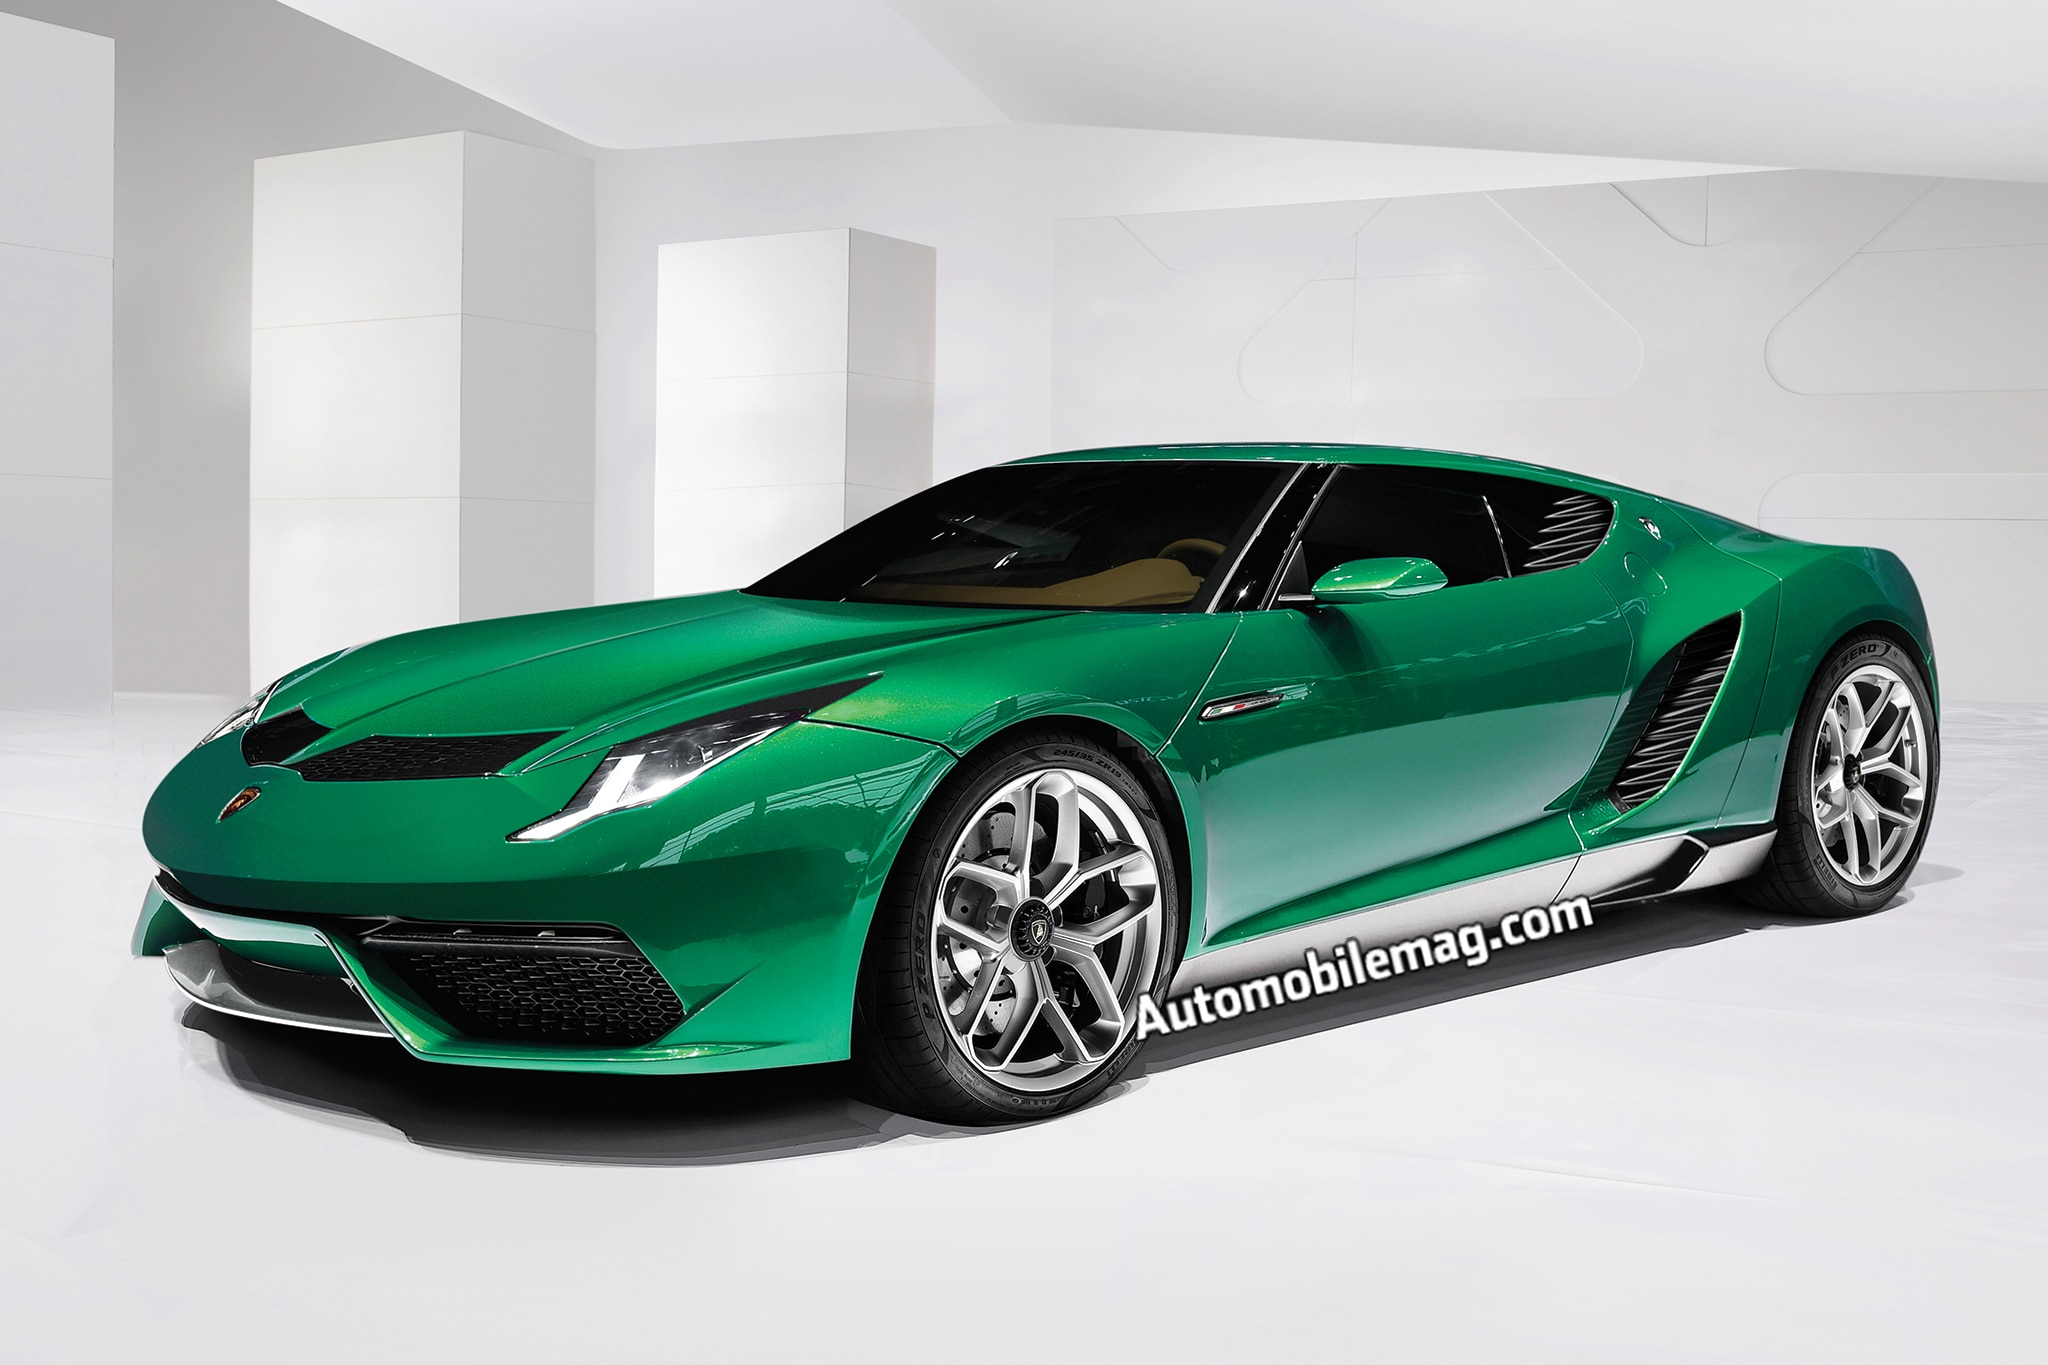 lamborghini new car 2018 with Heres New Lamborghini Miura Look Like on Wembley Stadium Tour For Two Adults additionally respond further 09 together with Racing Lamborghini Diablo Gtr Bargain likewise Ferrari 488 Pista.